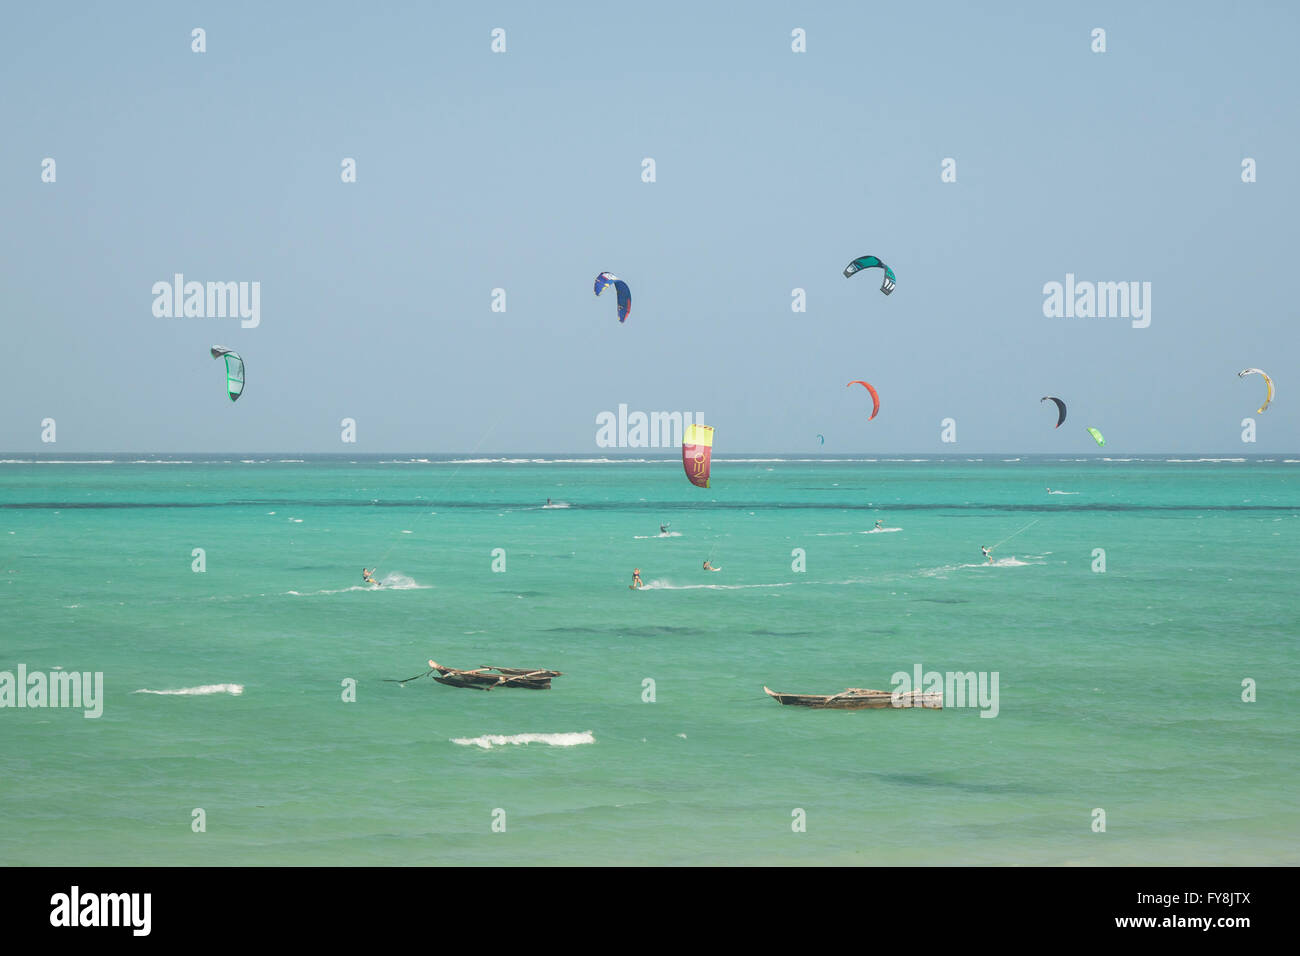 Kitesurfers kiting near wooden fish boats in the Indian ocean at Tanzania, Zanzibar - Stock Image